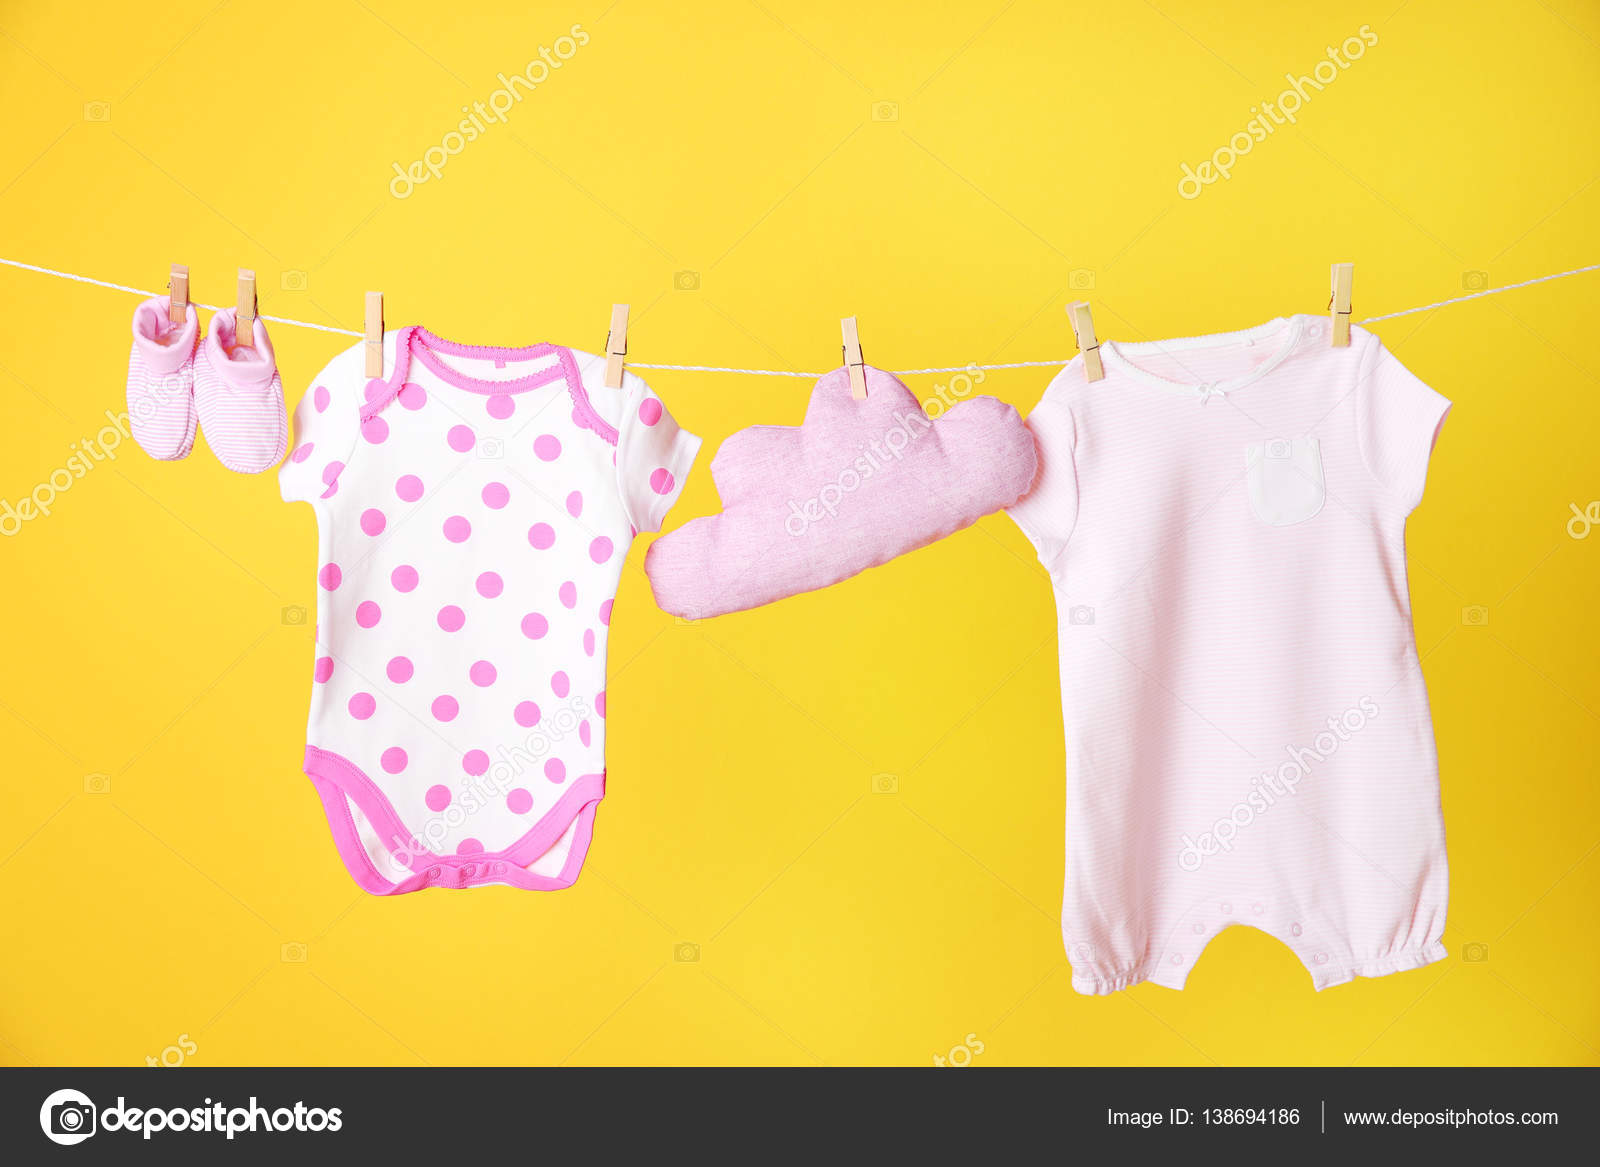 clothesline with hanging baby clothes stock photo belchonock